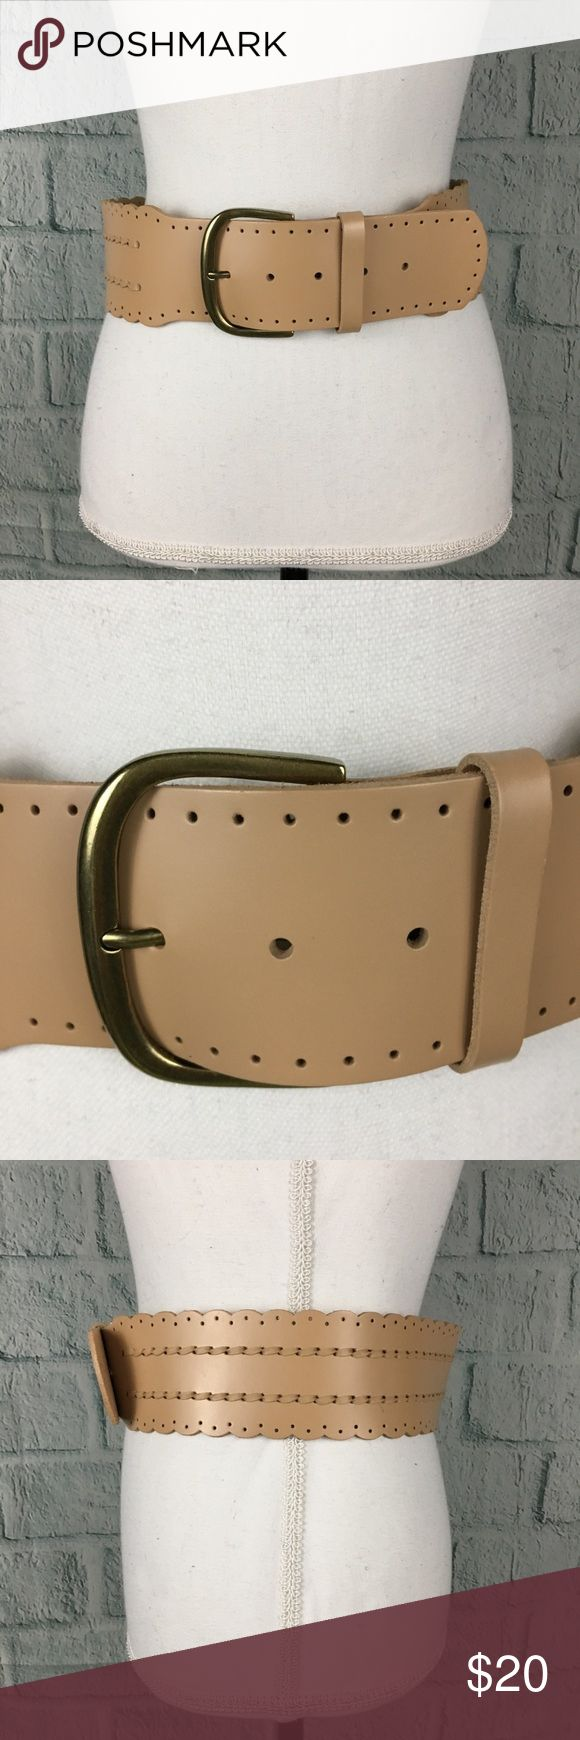 """Cabi Wide Scalloped Bisque Tan Leather Belt CAbi """"bisque"""" tan leather scalloped fashion belt.  The wide belt has scalloped edges and leather stitching. The buckle is brass tone and measures about 3"""" wide. The belt leather is about 2.75"""" wide and 37"""" long.  EUC - no notable signs of wear CAbi Accessories Belts"""